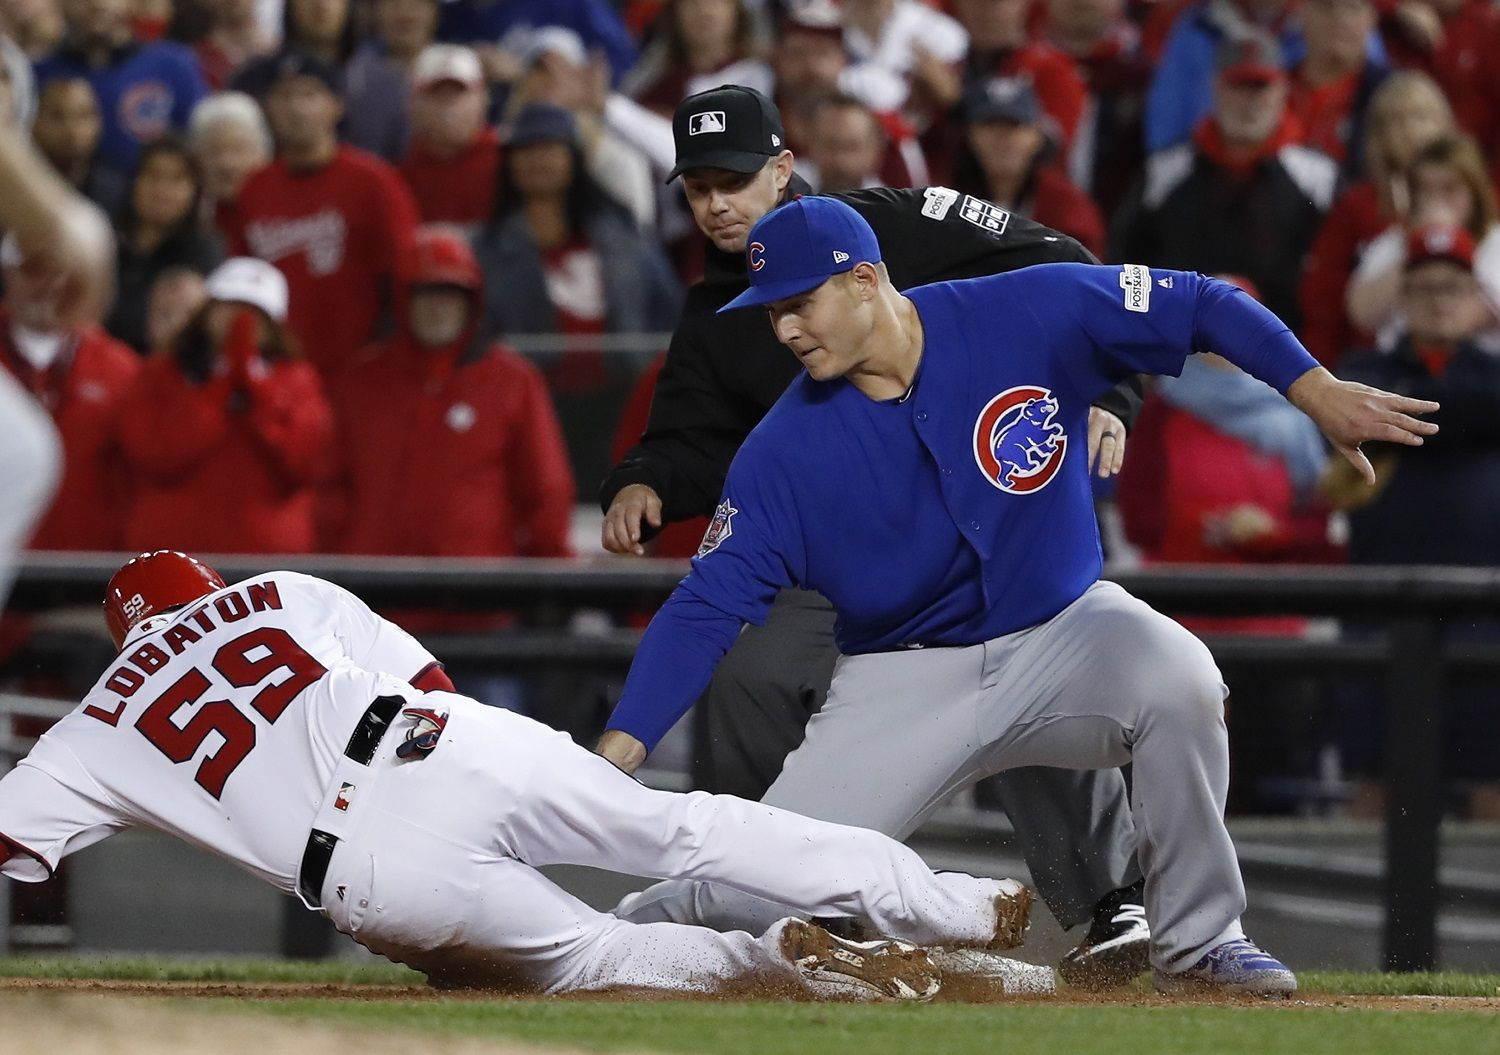 Chicago Cubs first baseman Anthony Rizzo (44) picks off Washington Nationals' Jose Lobaton on a throw from catcher Willson Contreras during the eighth inning in Game 5 of baseball's National League Division Series against the Chicago Cubs, at Nationals Park, early Friday, Oct. 13, 2017, in Washington. The Cubs challenged the call on the field and it was overturned on review. (AP Photo/Pablo Martinez Monsivais)